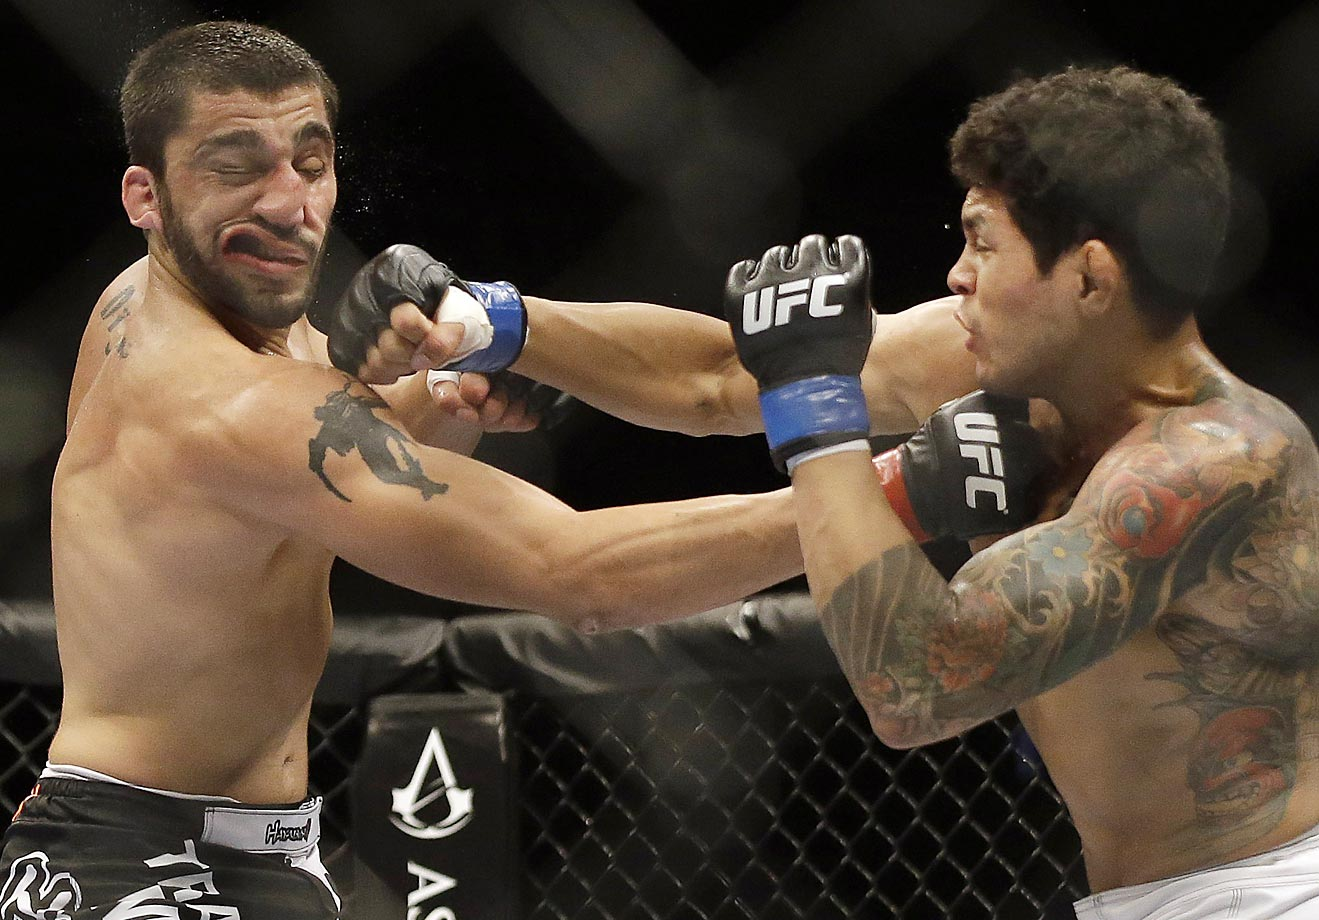 Diego Ferreira (right) lands a punch on Ramsey Nijem during the second round of their lightweight mixed martial arts bout. Ferreira won in the second round.